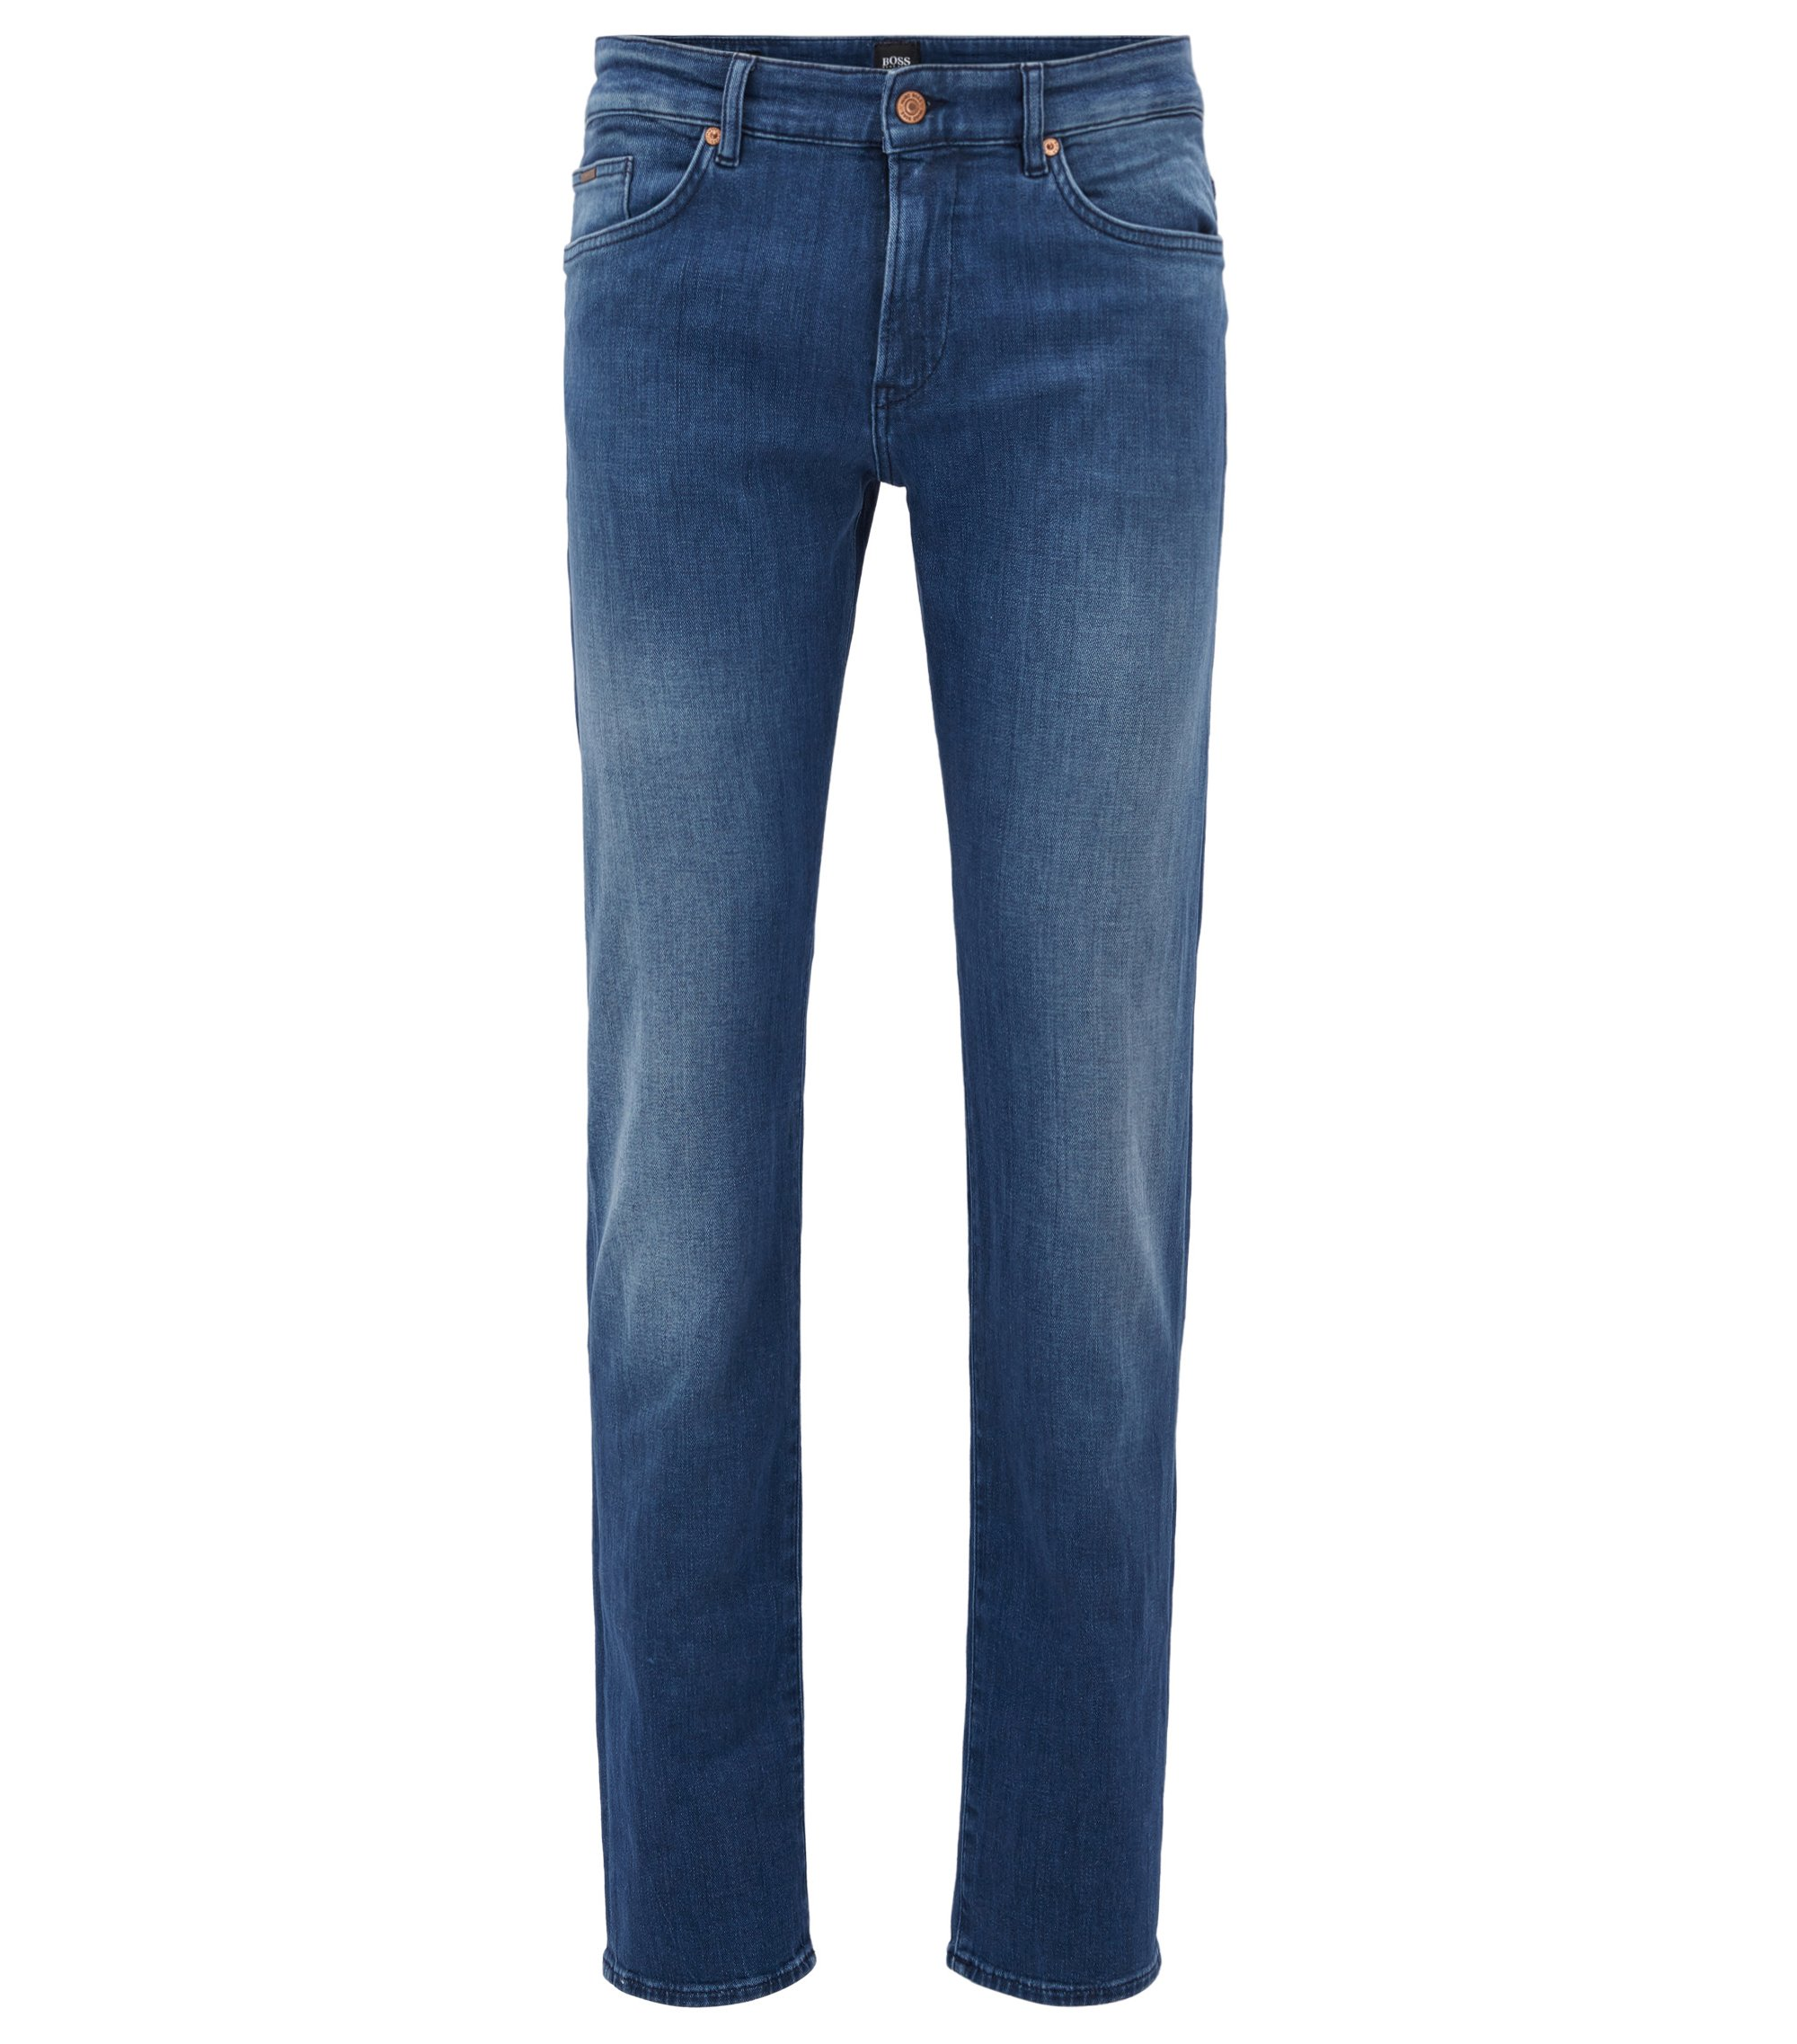 Jean Slim Fit en denim stretch au toucher cachemire, Bleu